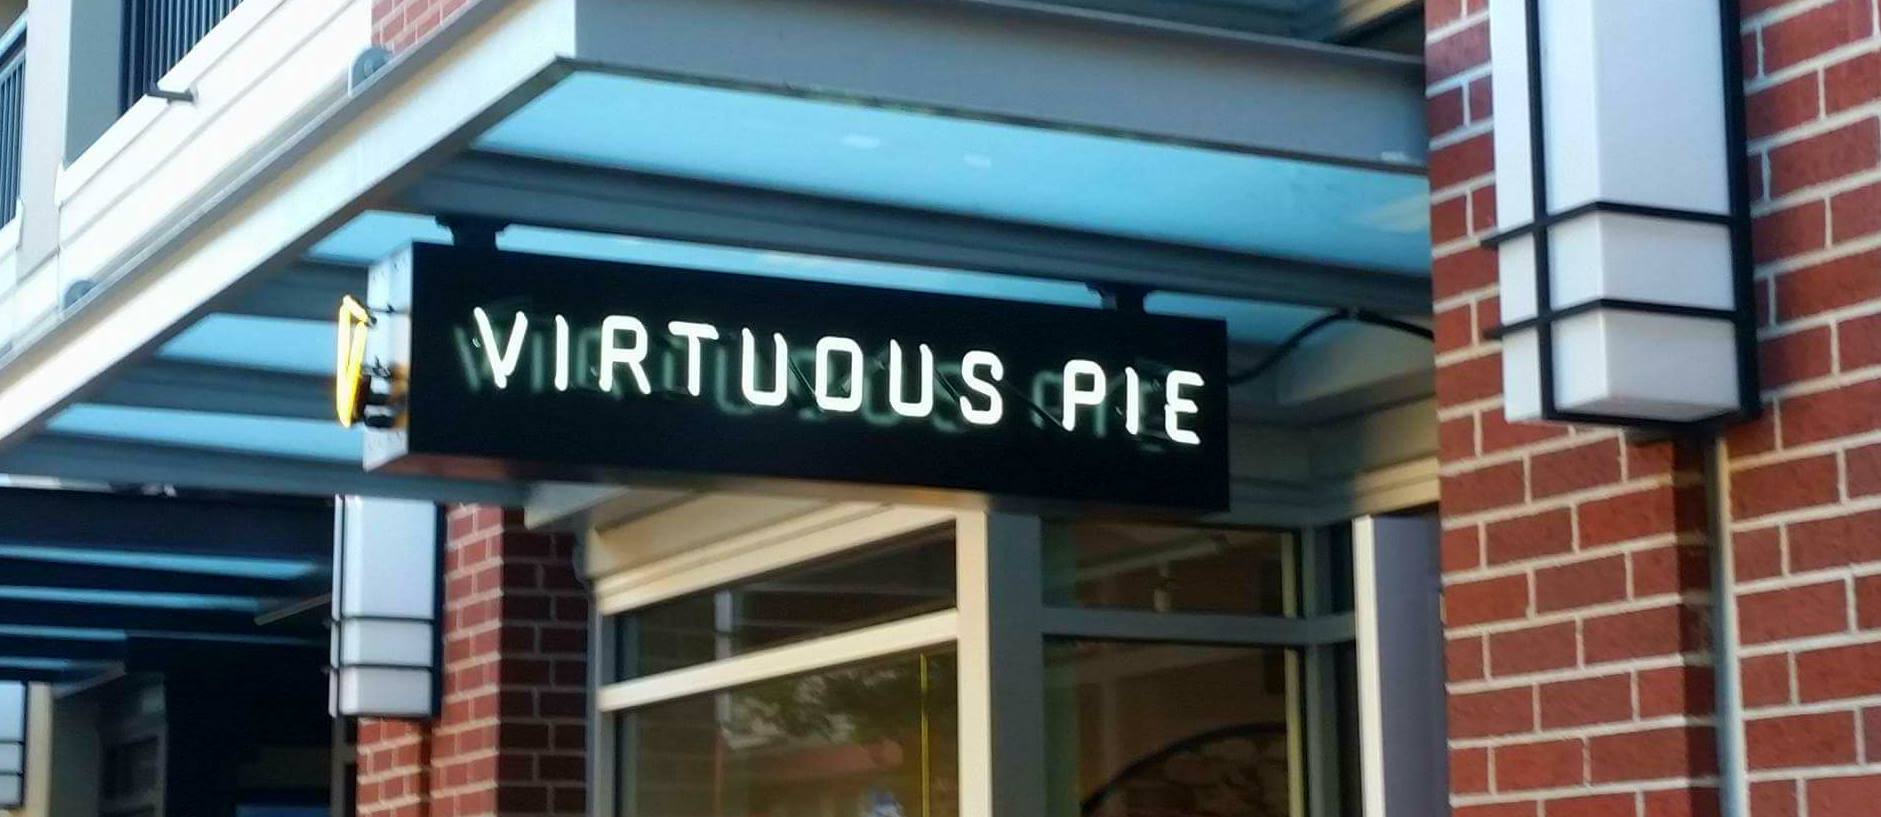 Virtuous Pie, Vancouver's new vegan pizza place